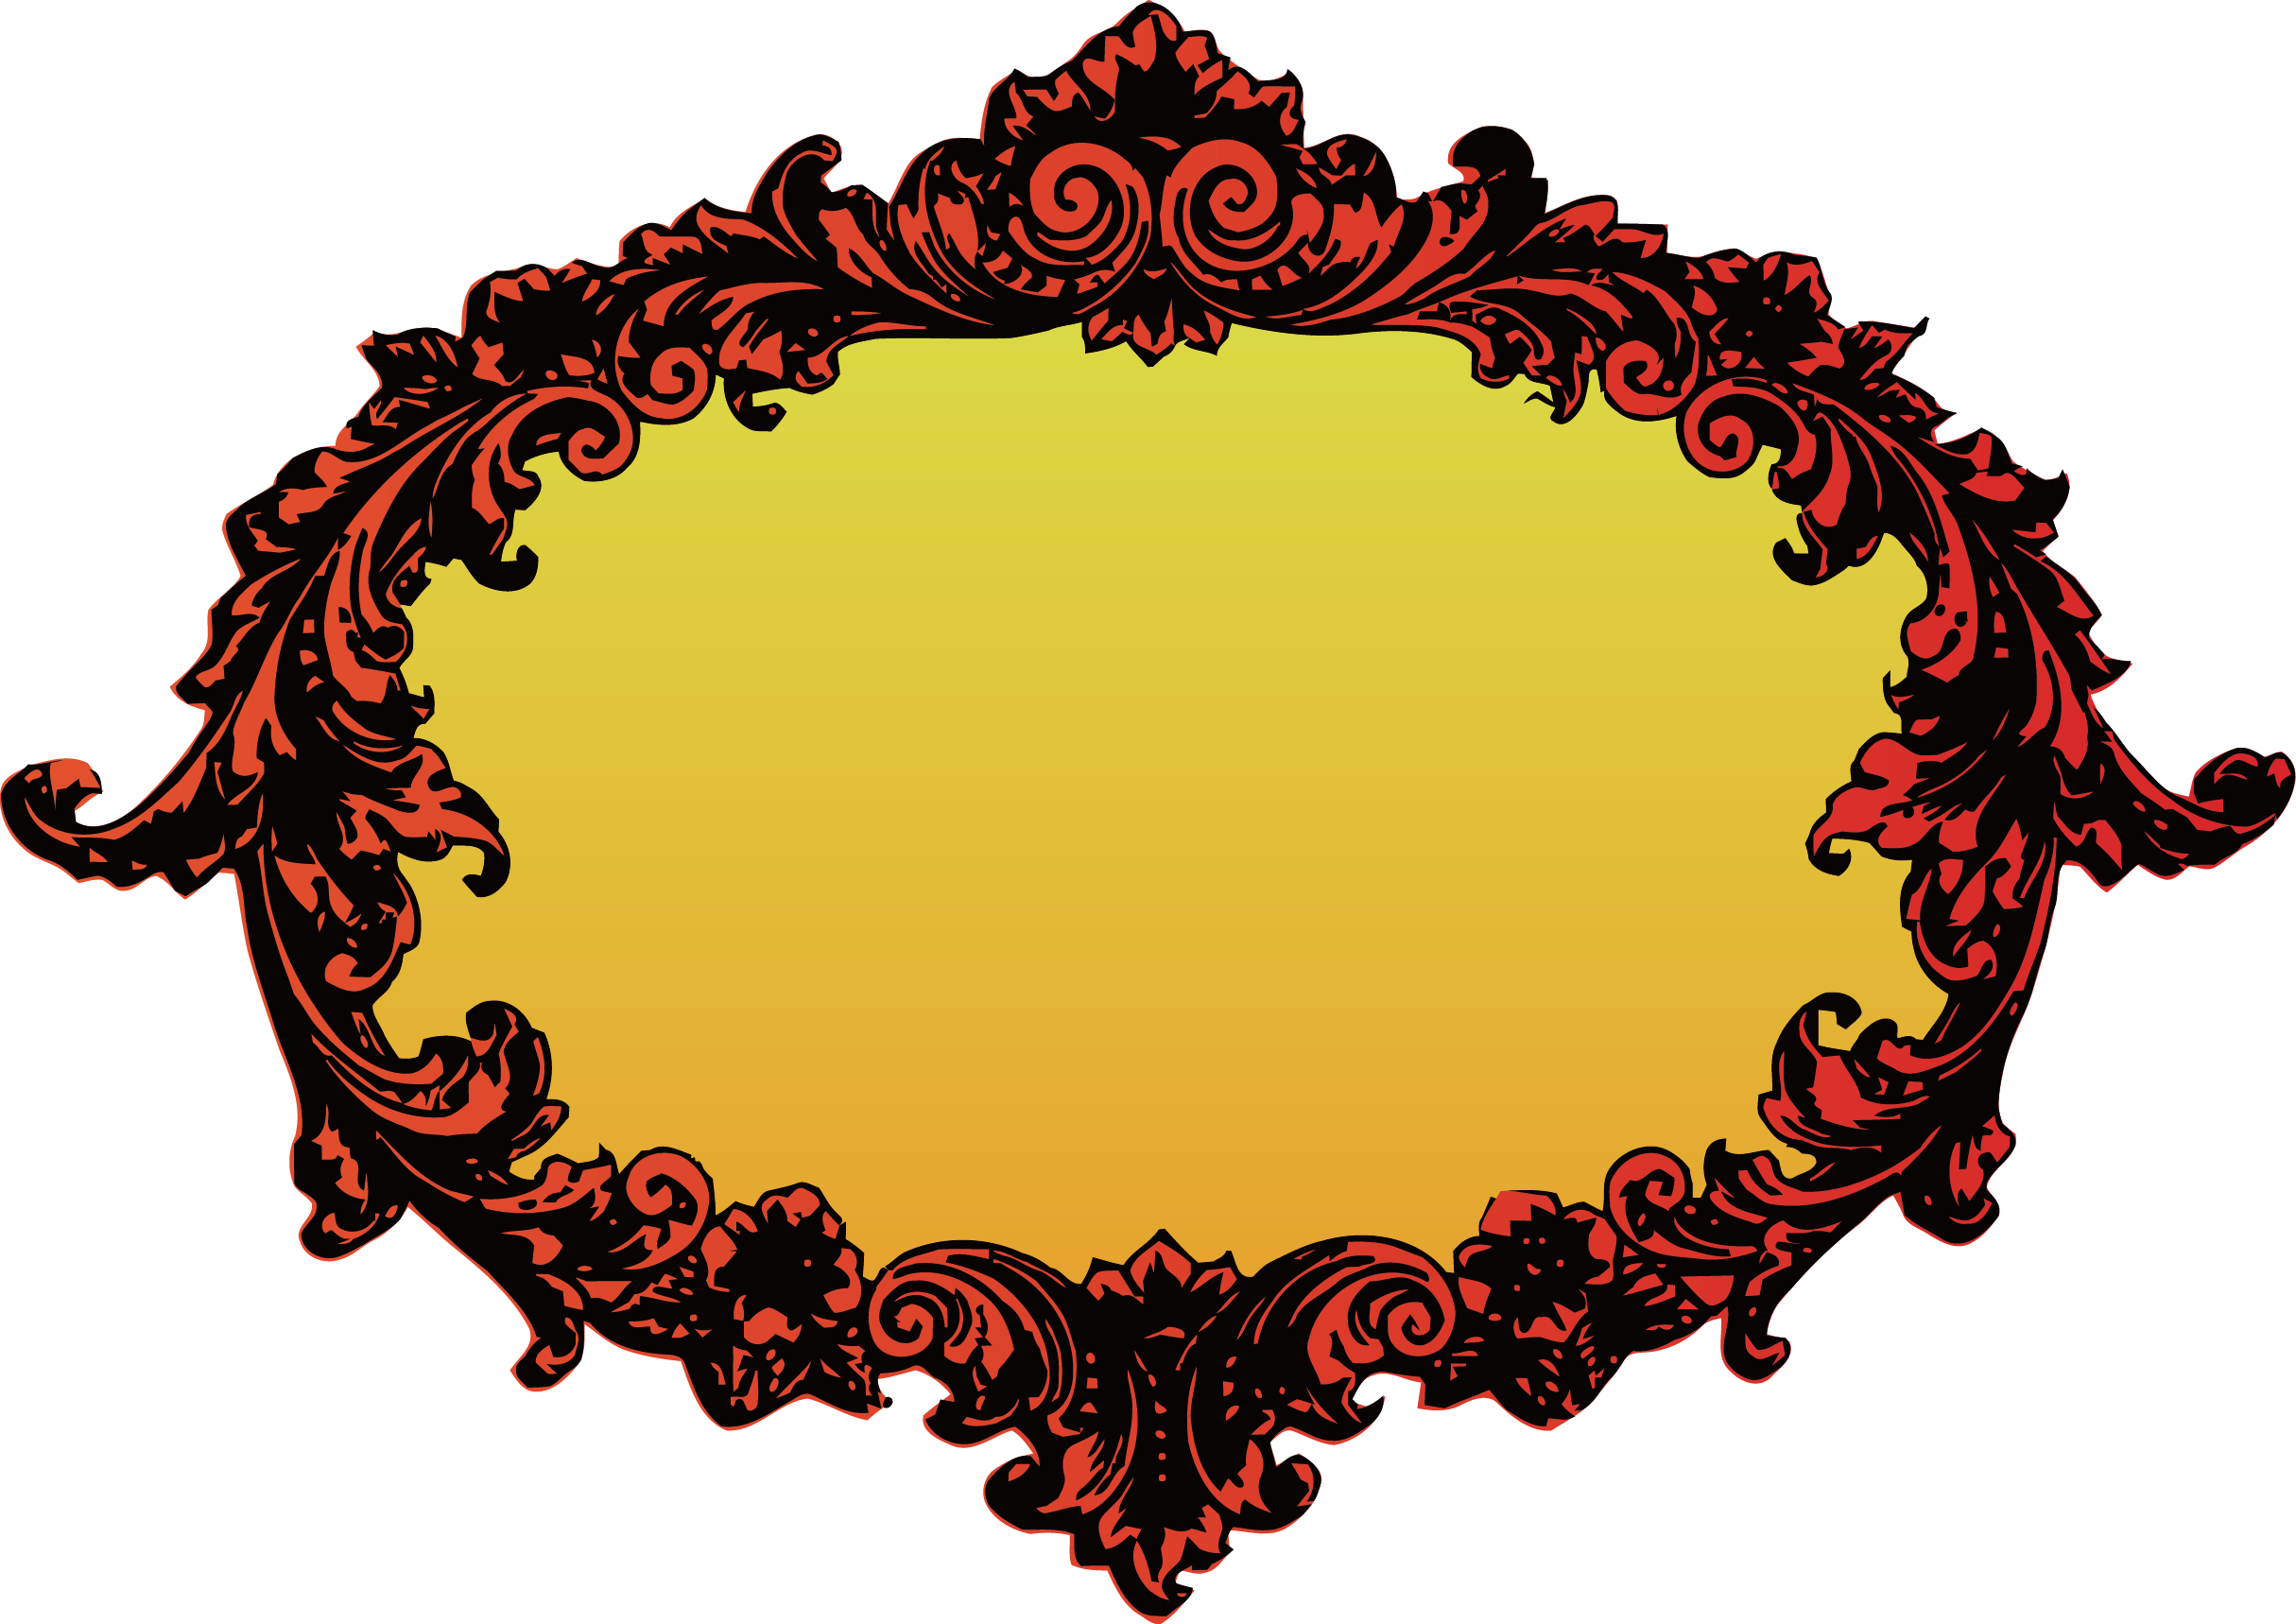 Oval clipart lace. Borders and frames picture